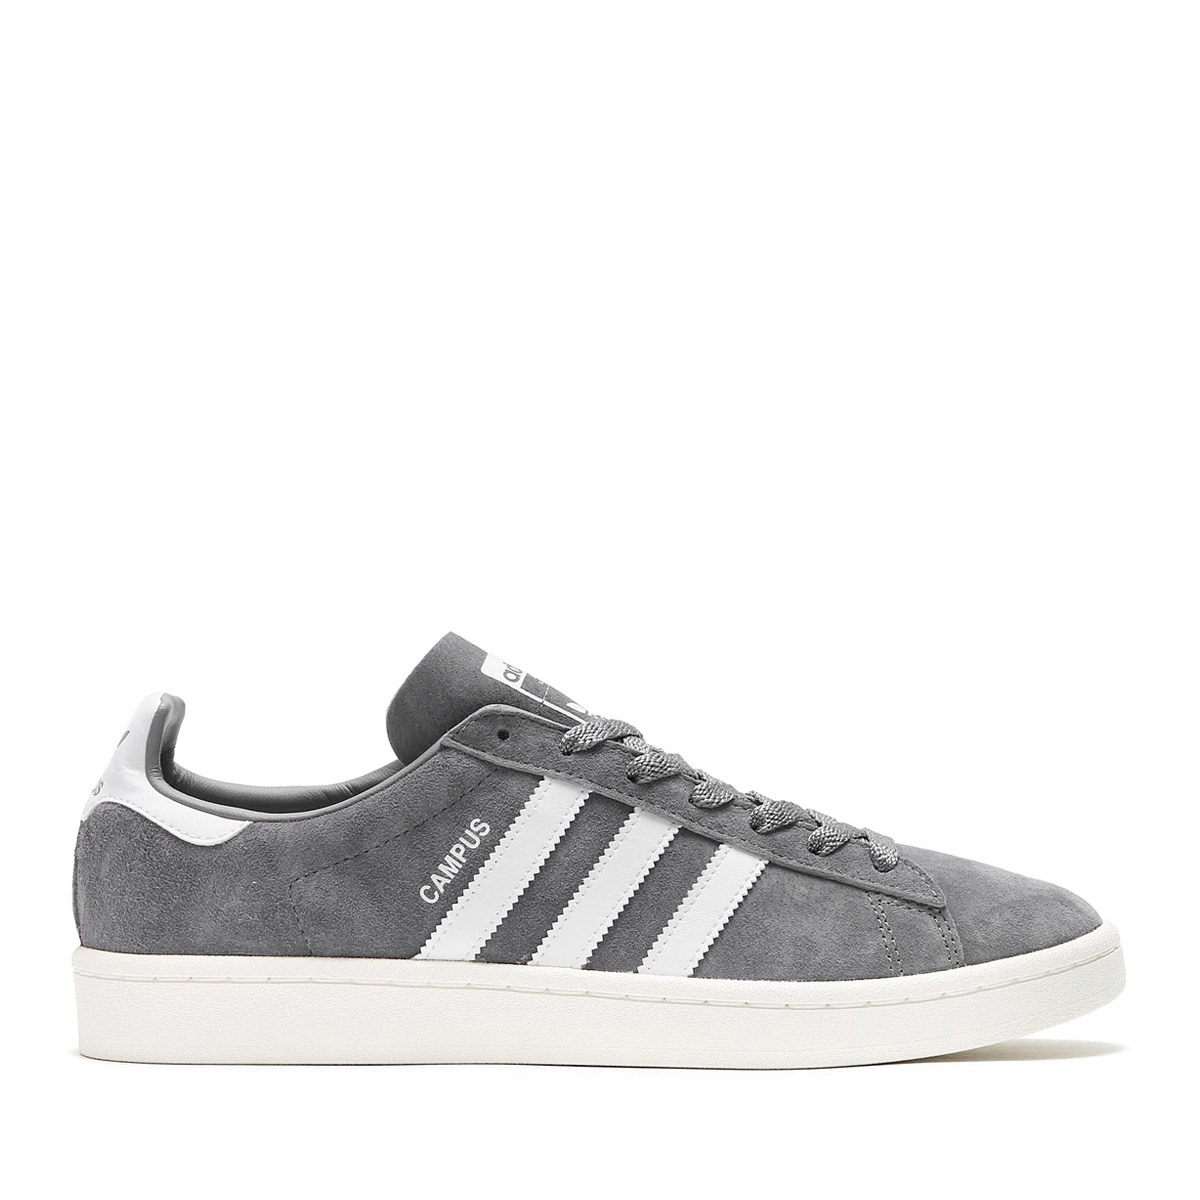 adidas Originals CAMPUS (Adidas original scan pass) (Grey/Running  White/Chalk White) 17SS-I